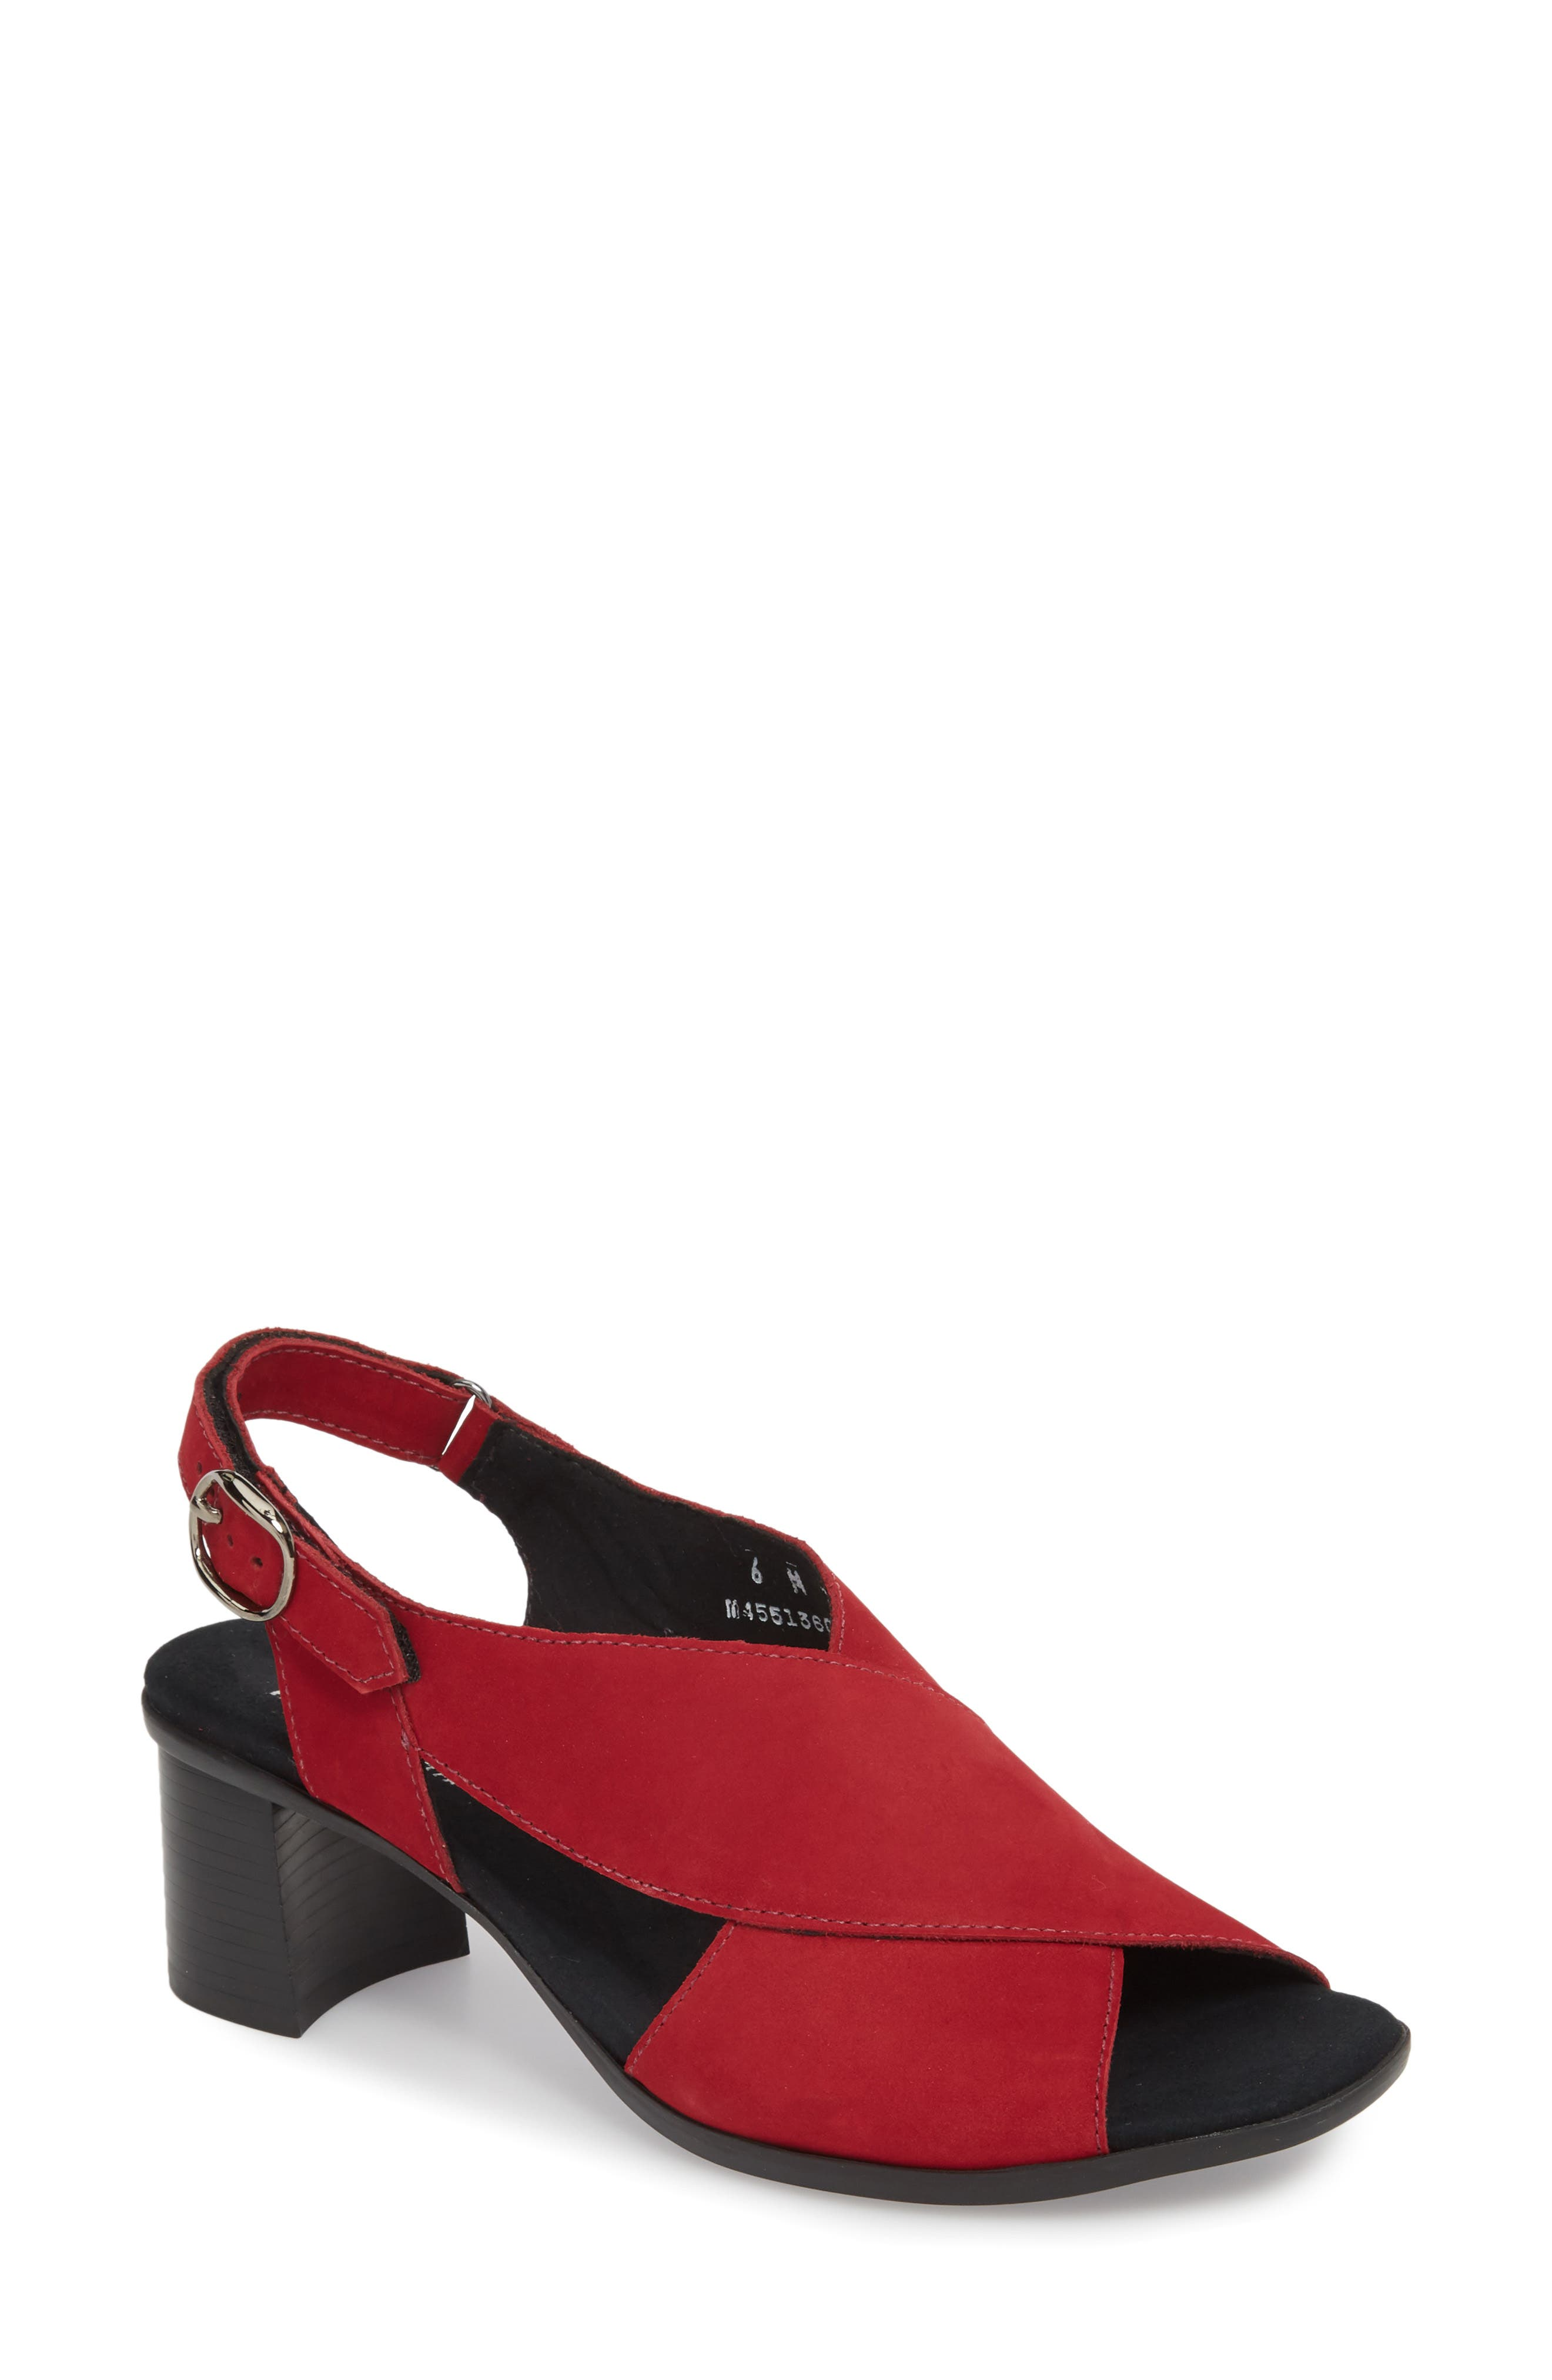 Laine Block Heel Sandal,                             Main thumbnail 1, color,                             RED NUBUCK LEATHER